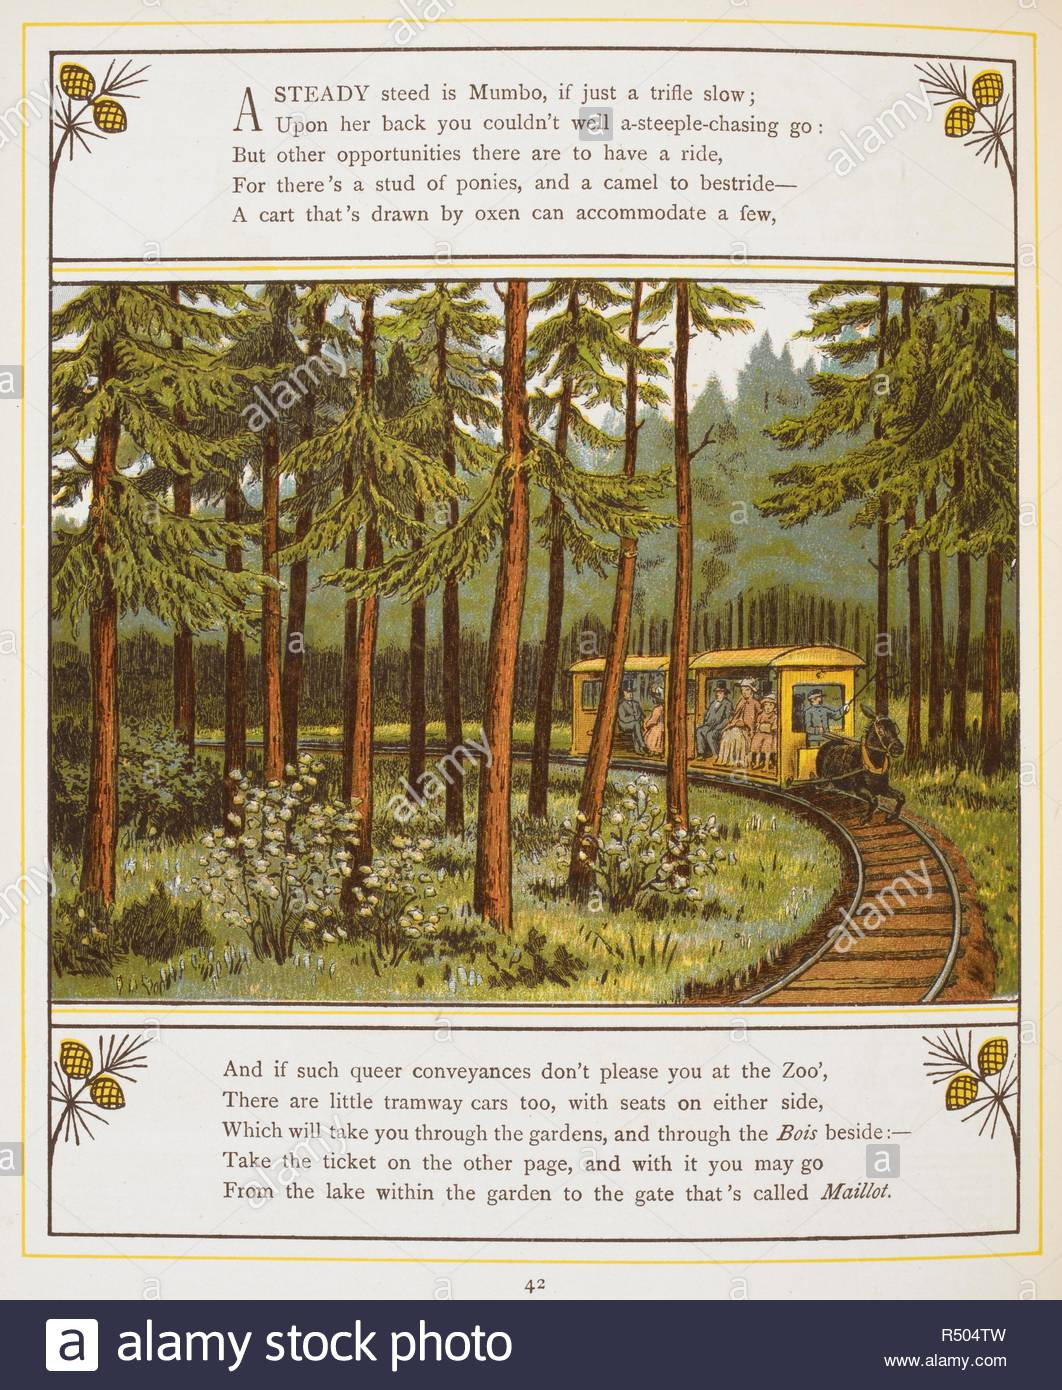 But Jardin A Tramway Pulled By A Donkey Or Mule Carrying Passengers Through